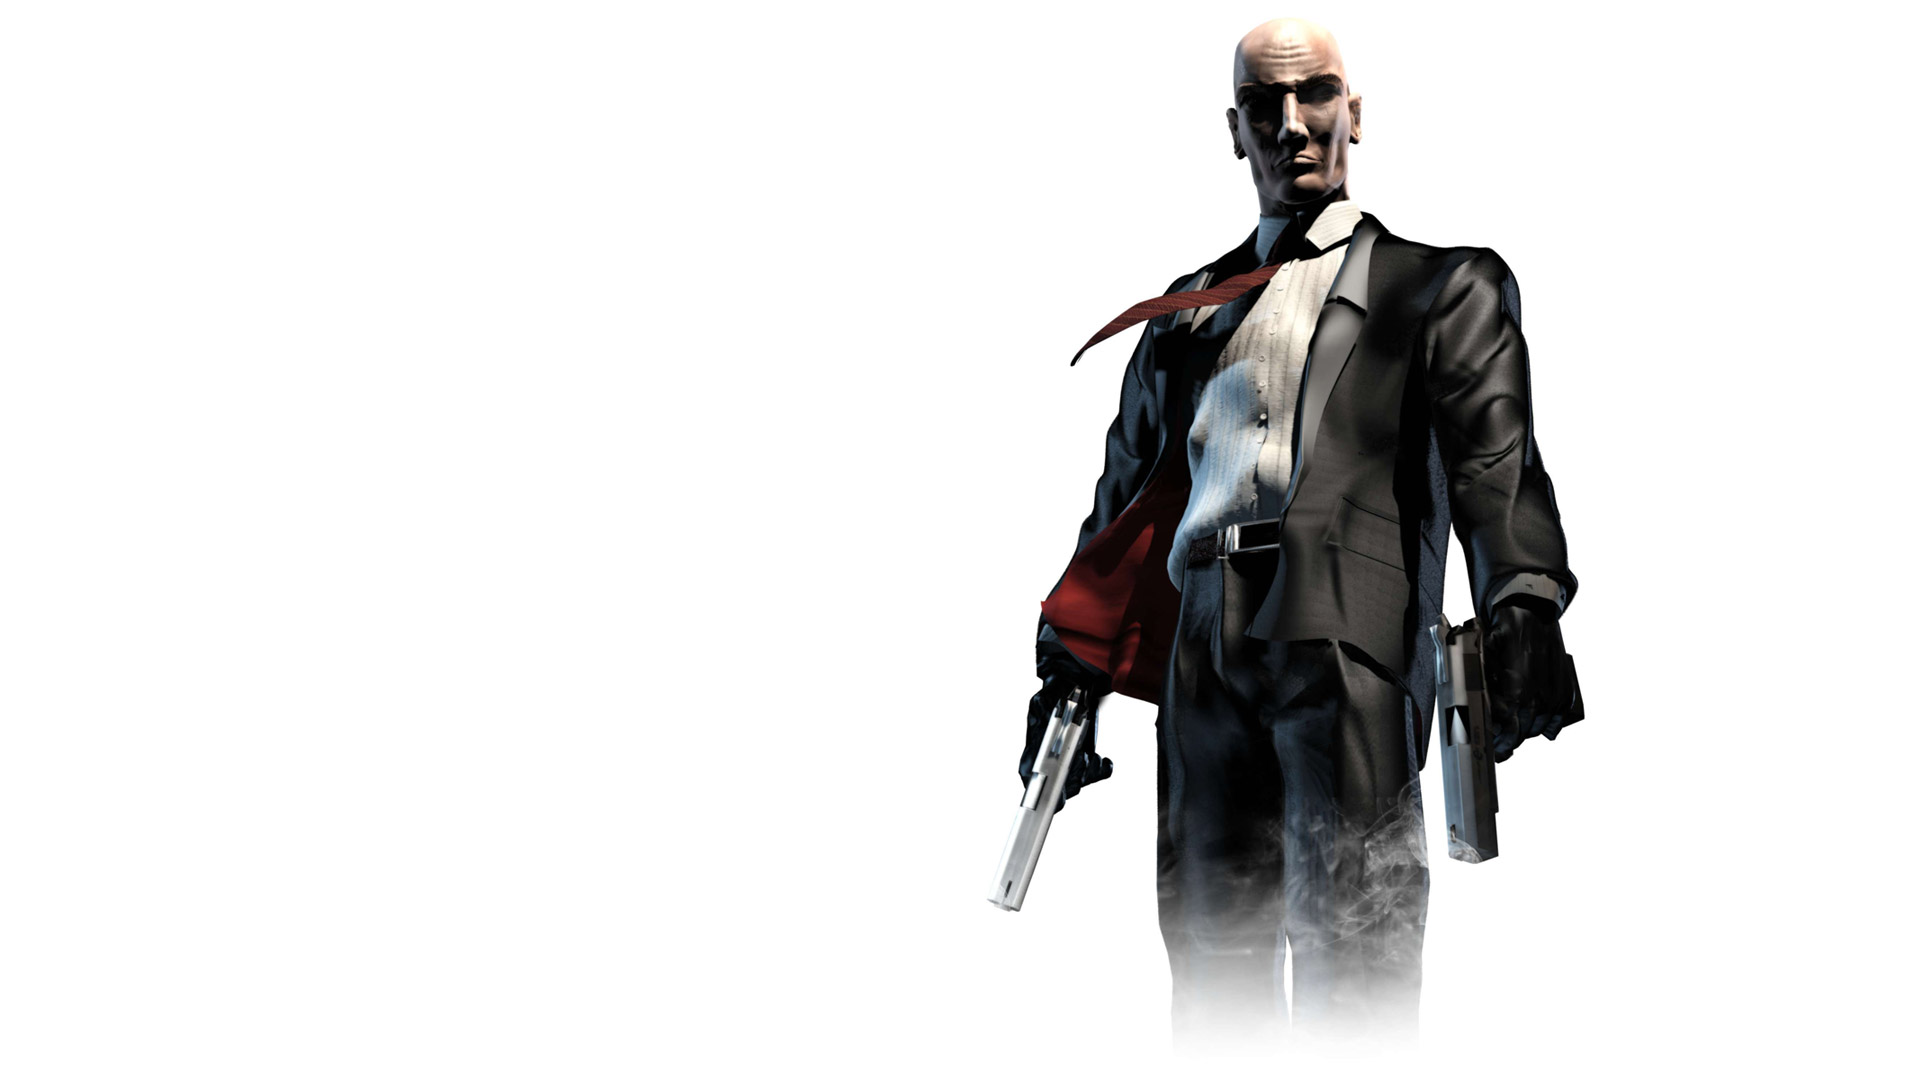 Hitman: Codename 47 Wallpaper in 1920x1080